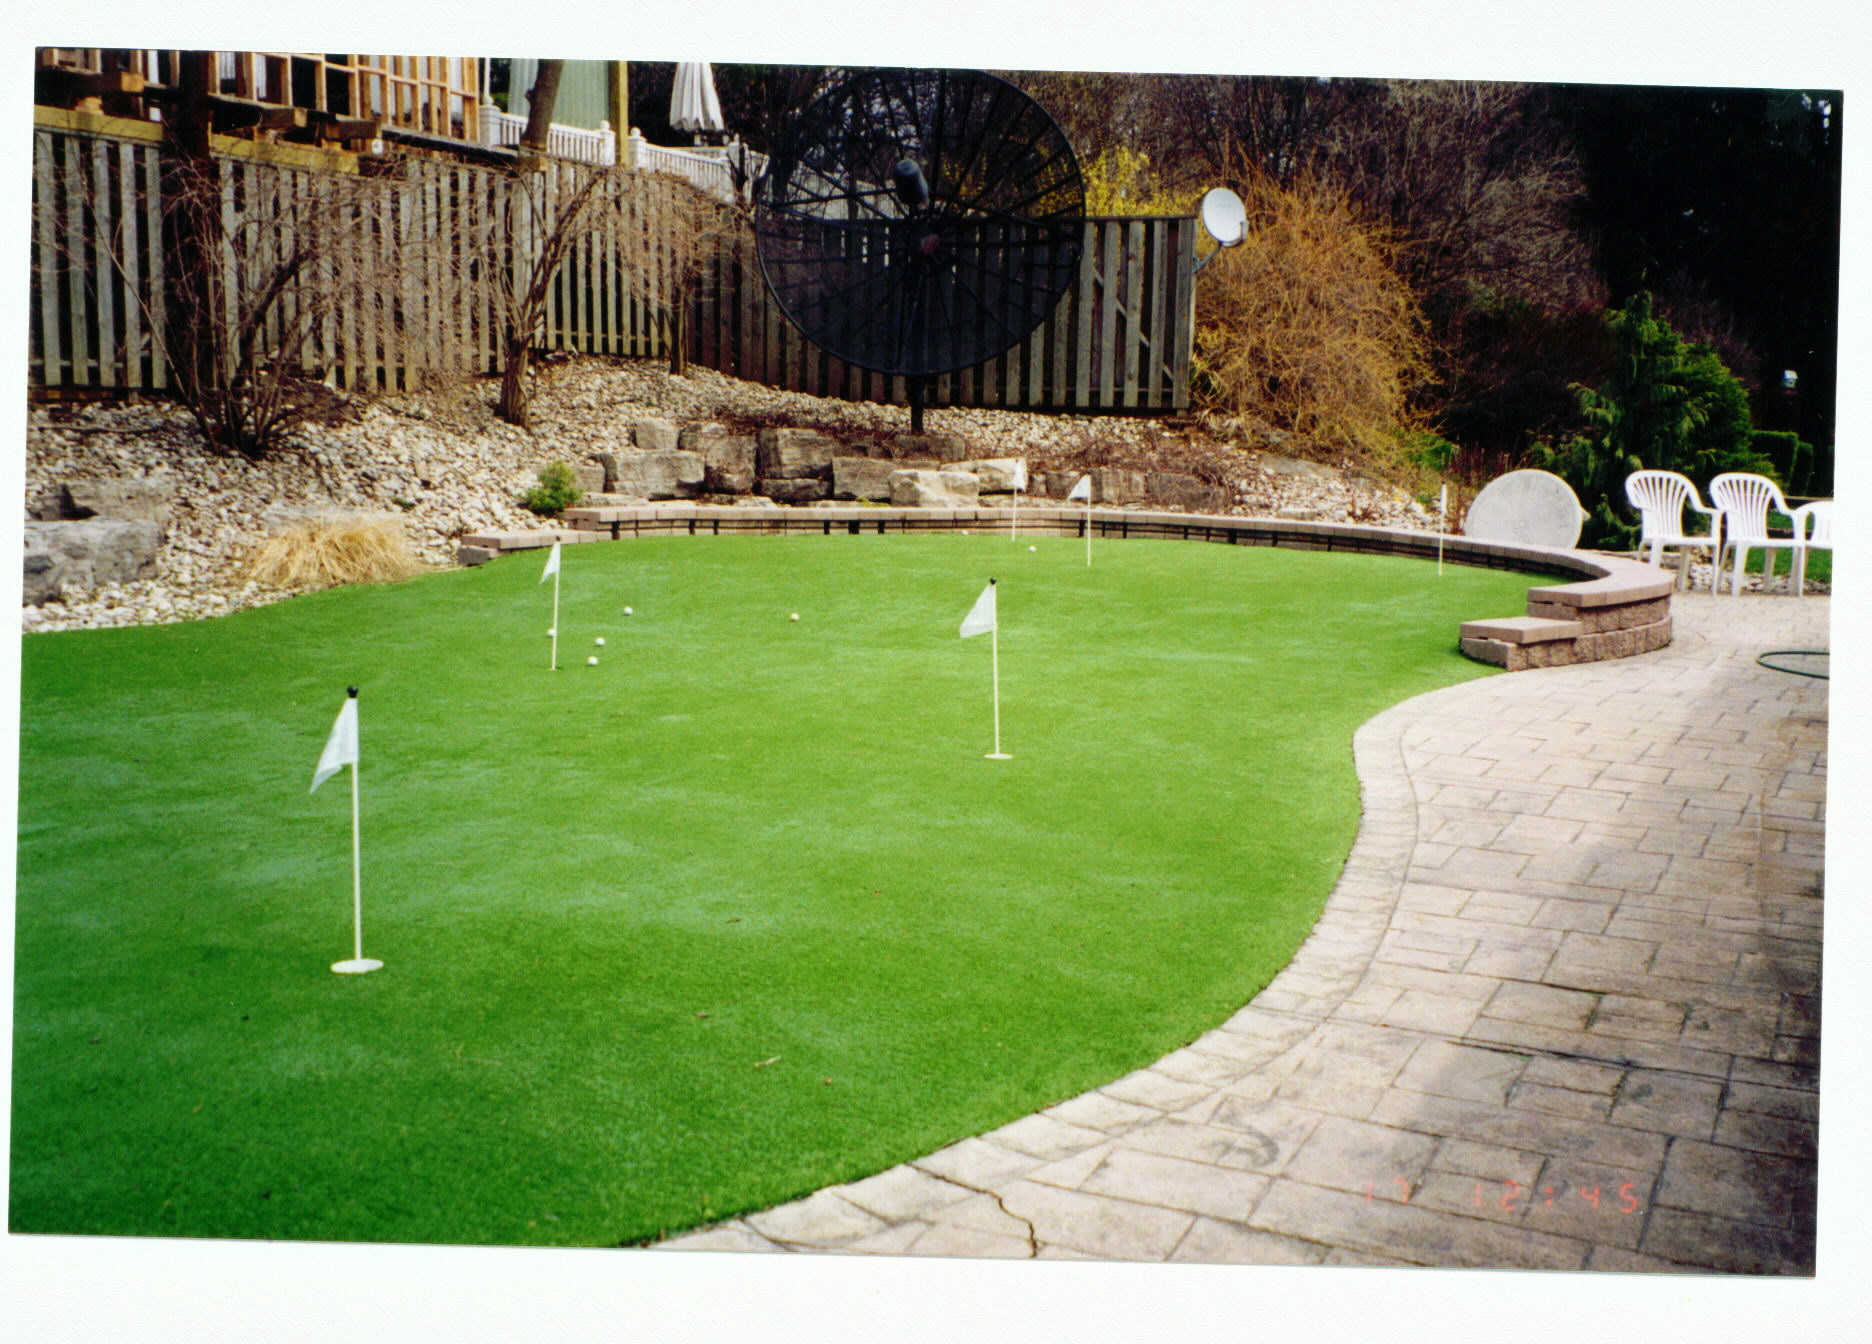 Best ideas about Backyard Mini Golf . Save or Pin Easy Backyard Mini Golf — Design & Ideas Backyard Mini Golf Now.